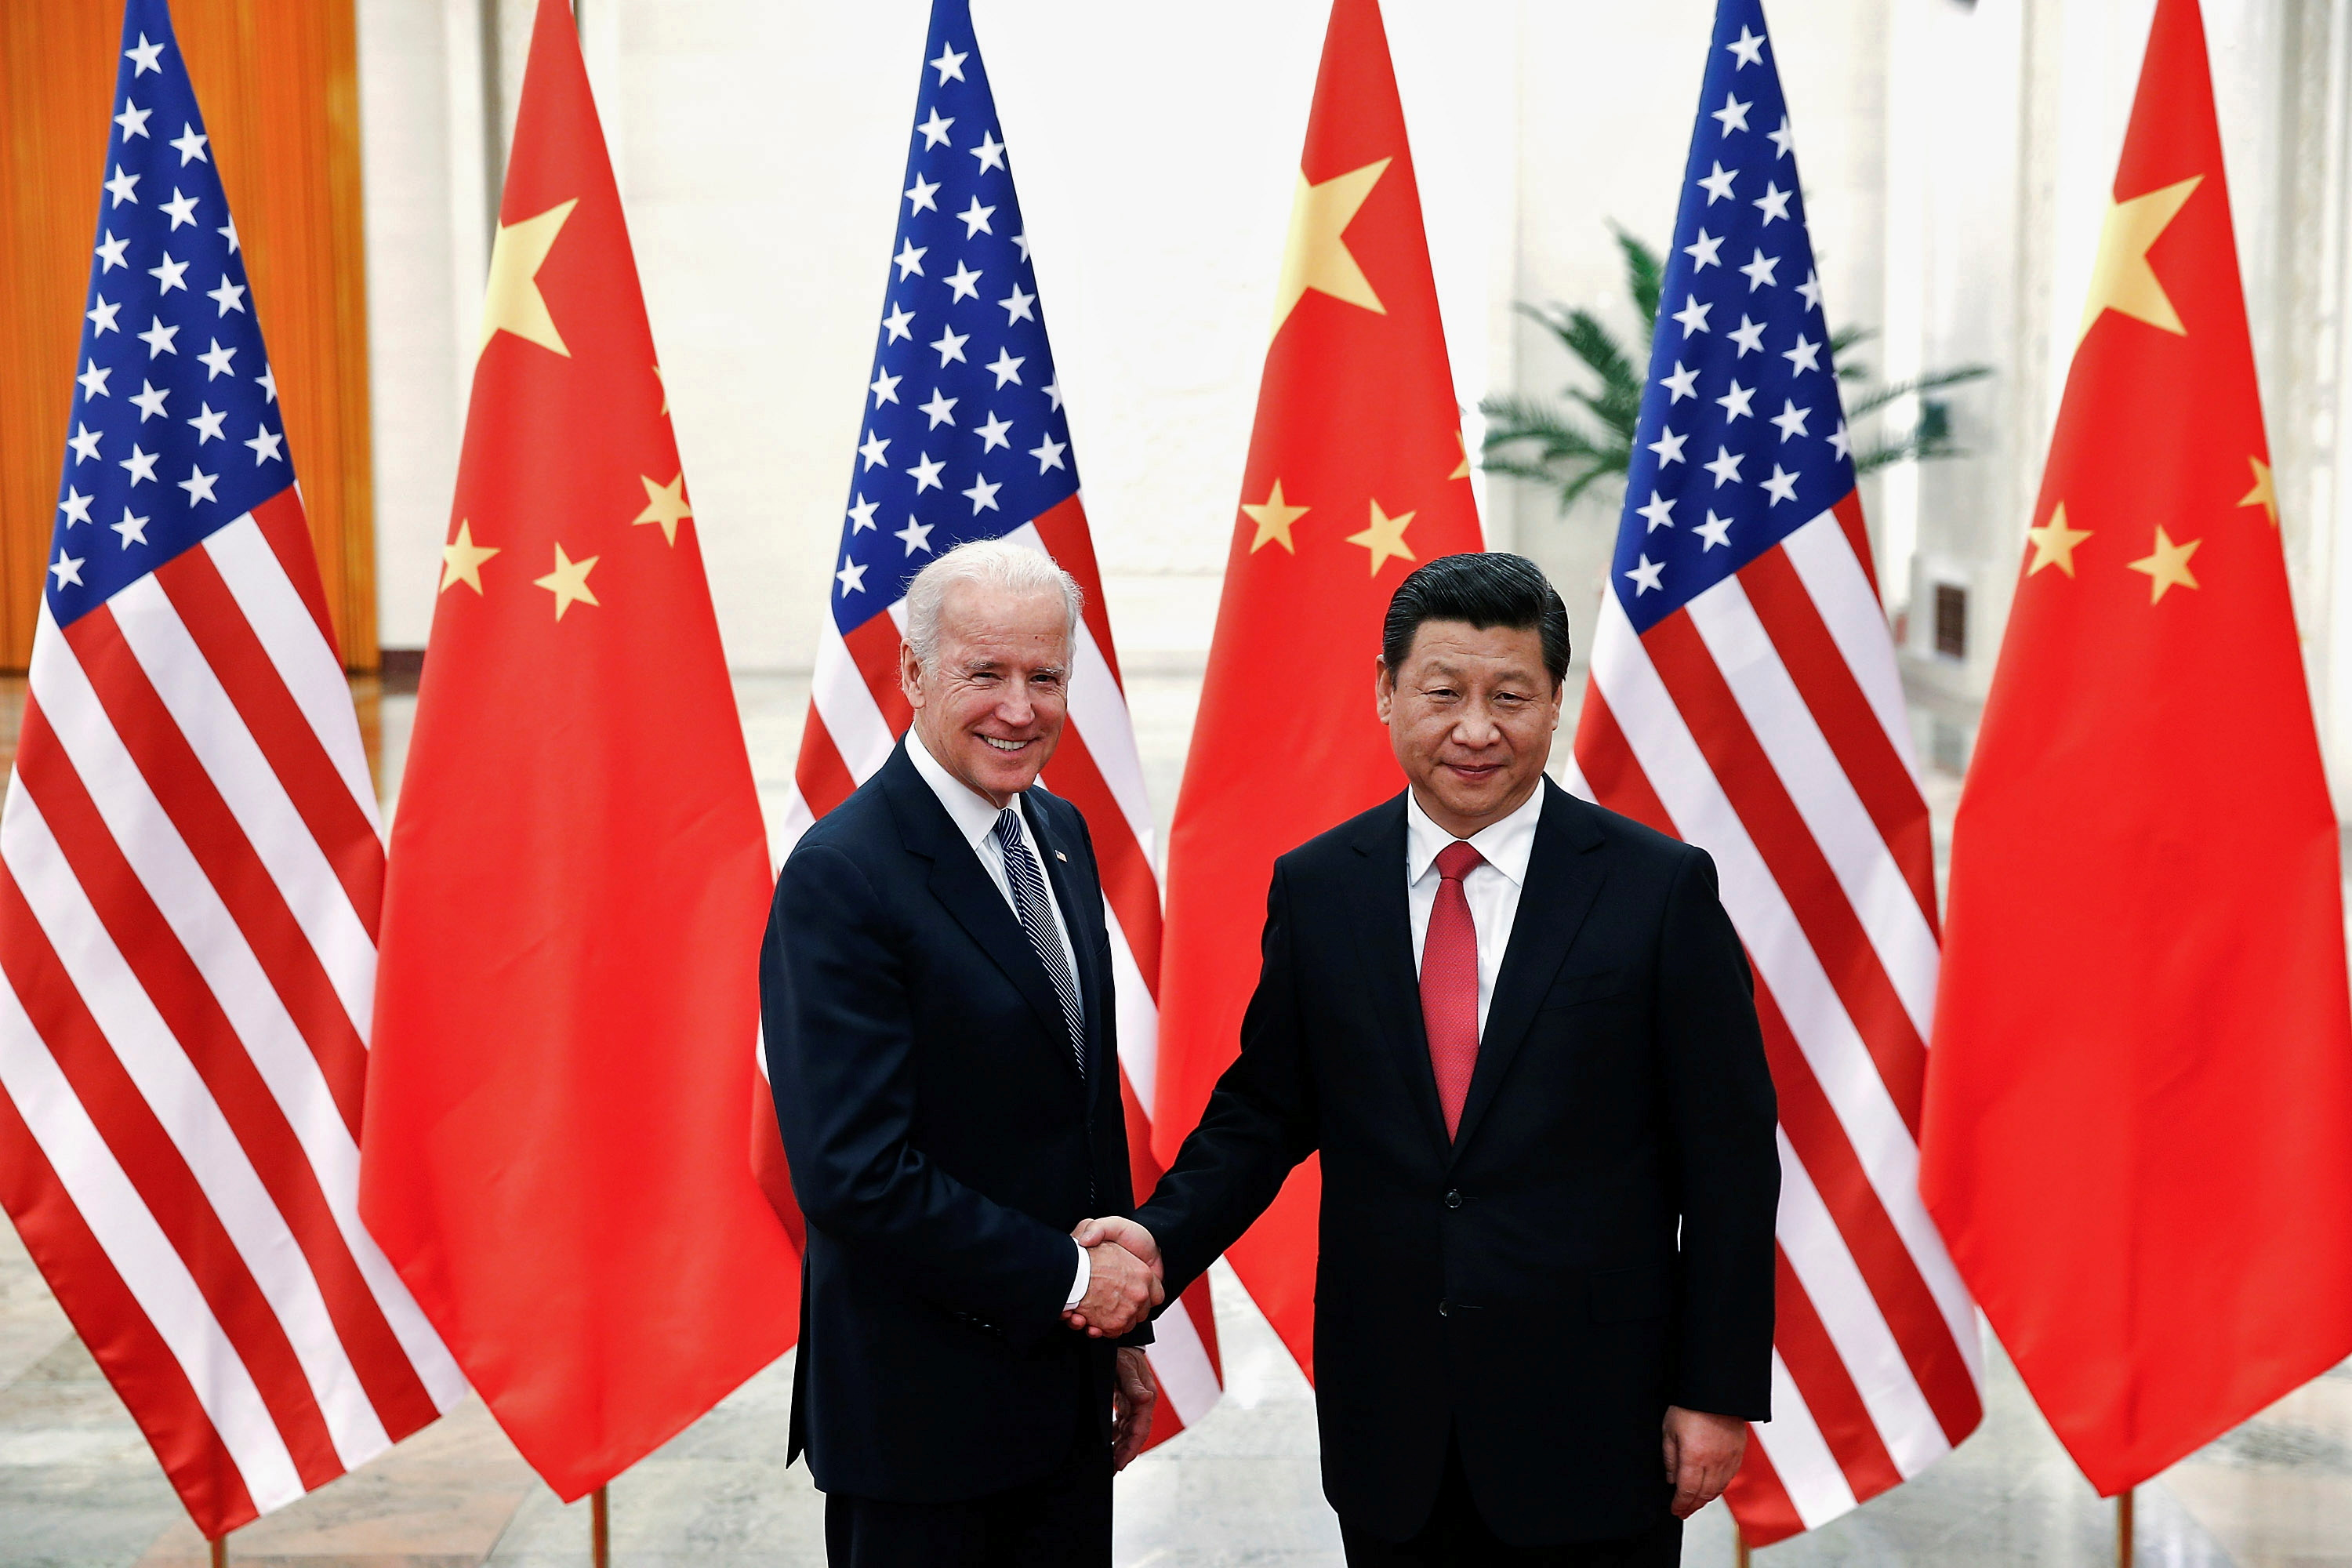 Chinese President Xi Jinping shakes hands with U.S. Vice President Joe Biden (L) inside the Great Hall of the People in Beijing December 4, 2013. REUTERS/Lintao Zhang/Pool//File Photo